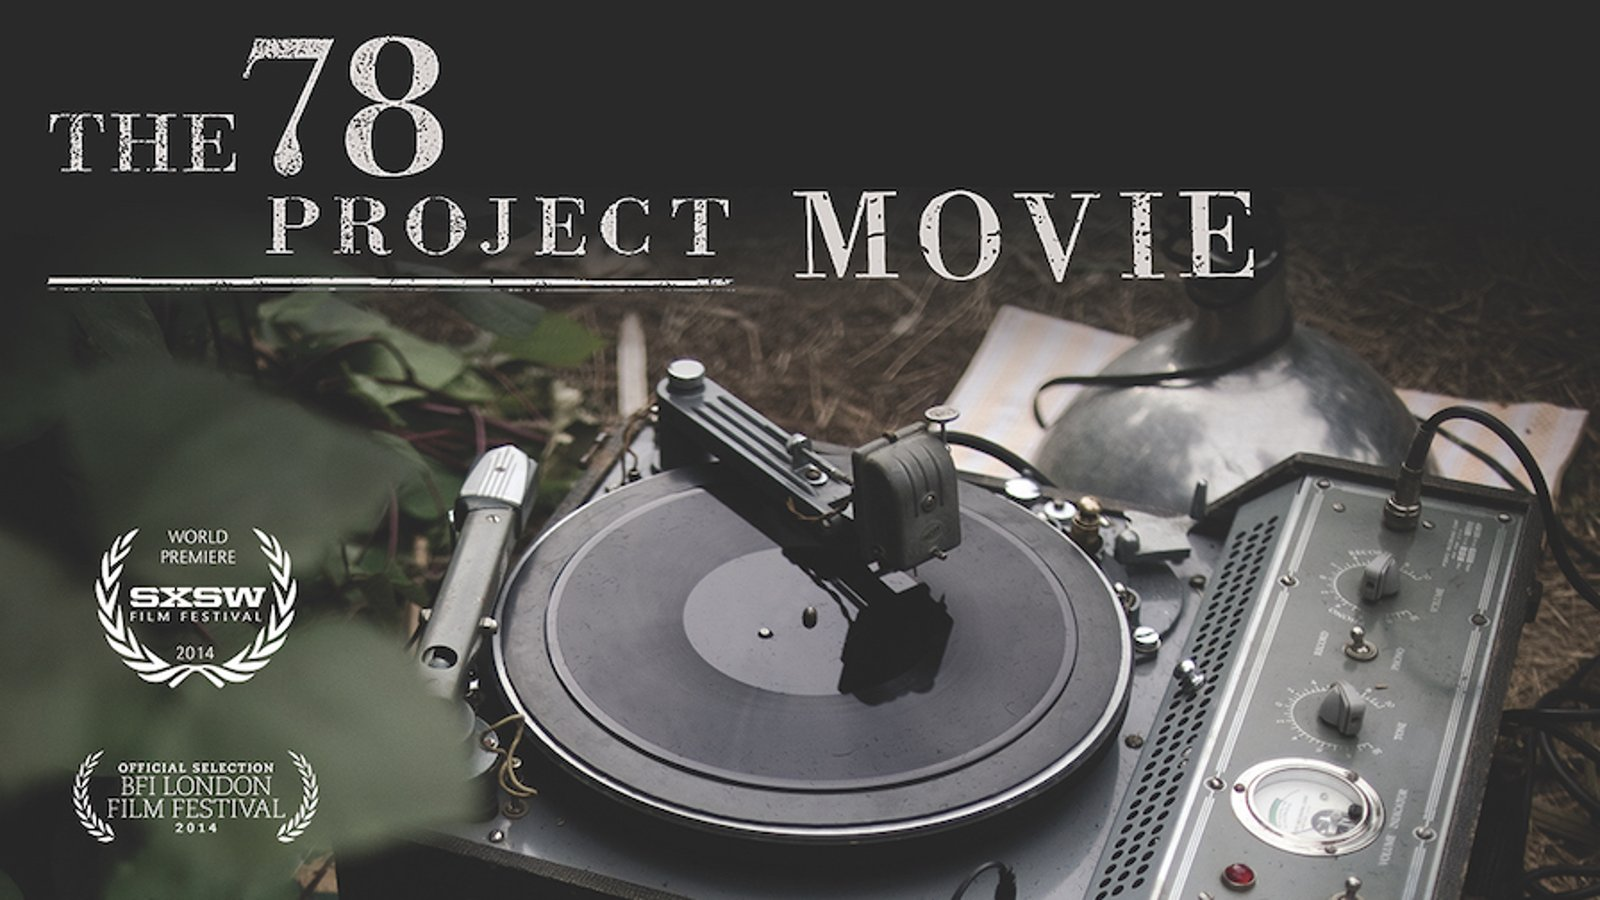 The 78 Project Movie - Celebrating One of America's Most Authentic Musical Forms